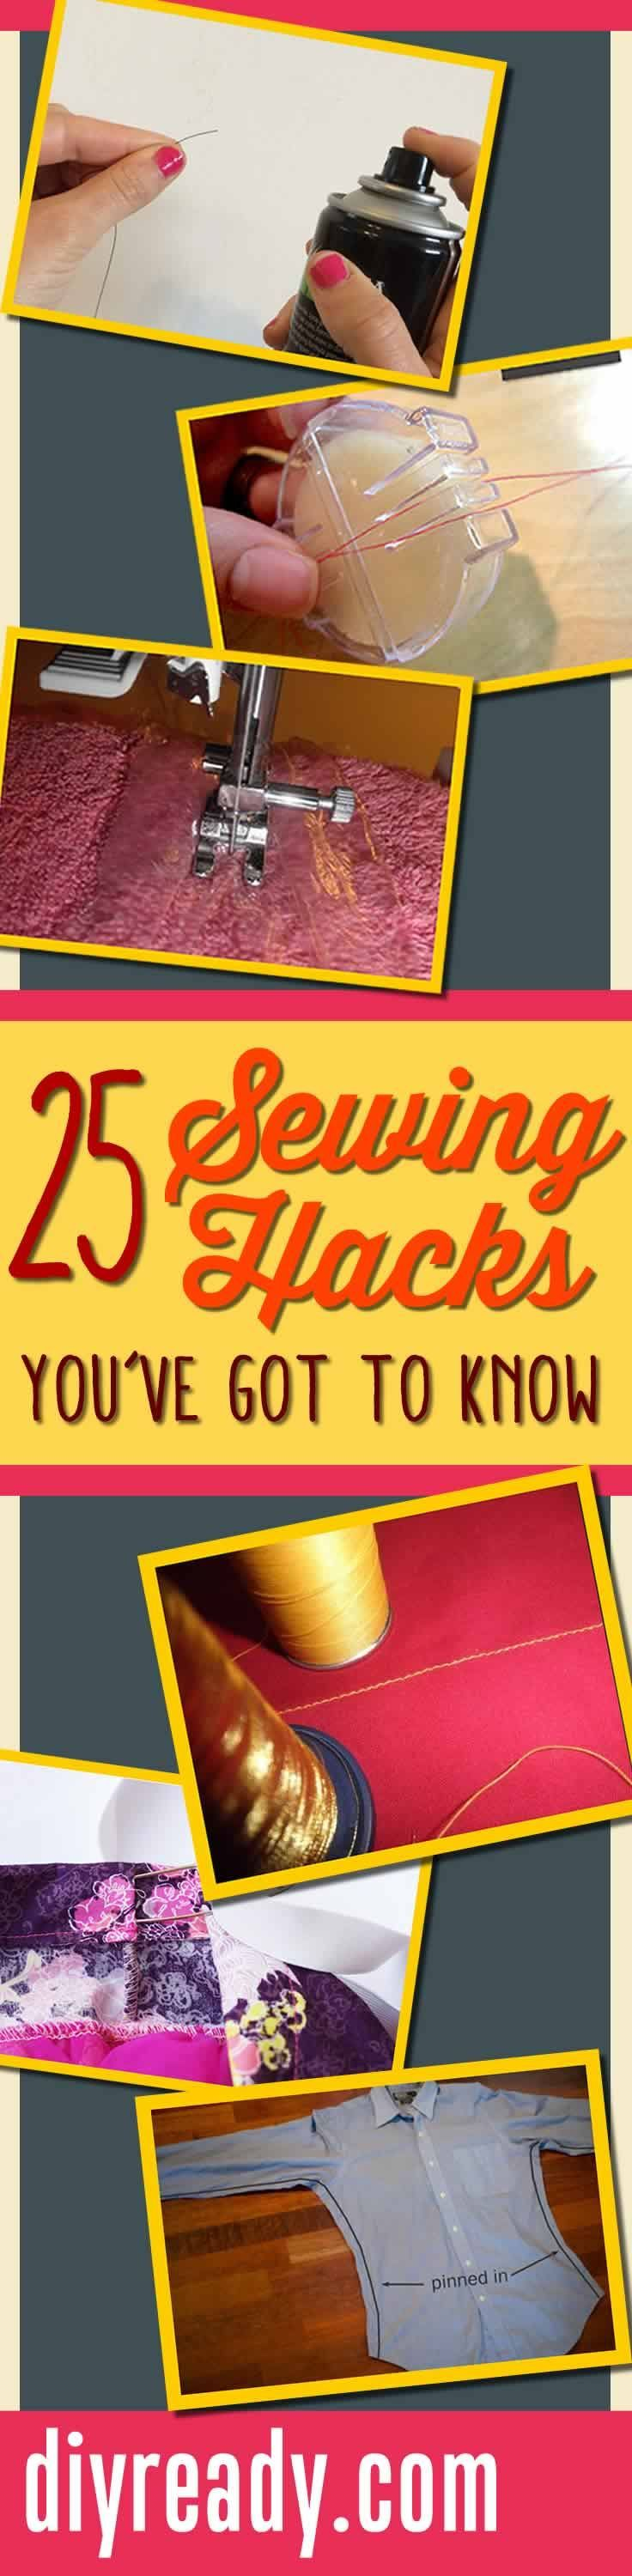 25 Best Sewing Hacks and Sewing Tips: After sewing for years I've naturally acquired a handful of tips and tricks. I've gathered together 25 of my favorites just for you. Read on for some of the best sewing hacks out there, and you'll be master of the machine in no time. Don't miss out on this awesome list of sewing hacks you'll want to try at home. I've seen tons of sewing tips, but none that were as simple and as straightforward as this one. You're goi